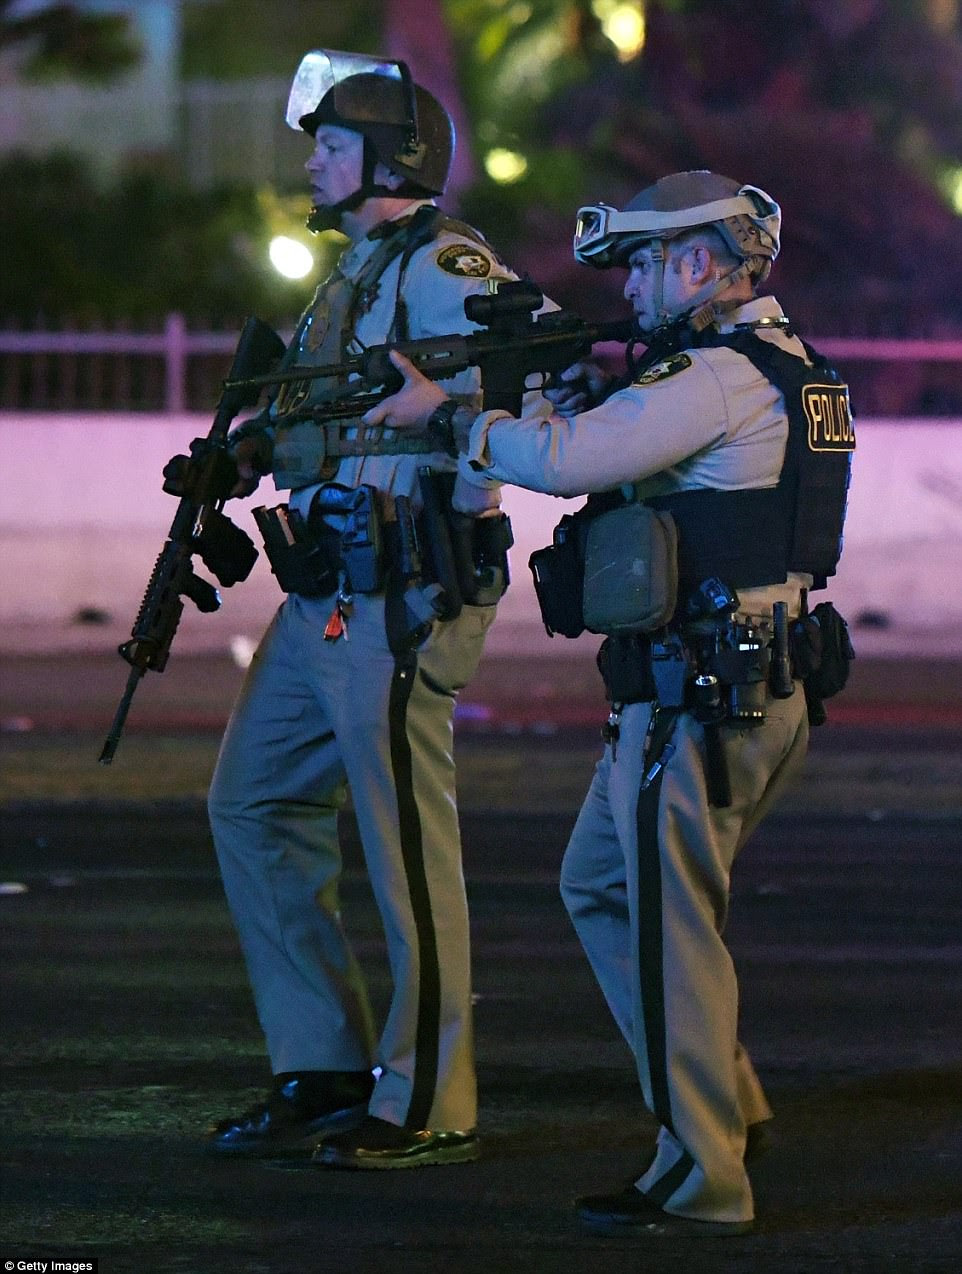 Las Vegas Metropolitan Police Department officers point their weapons at a car driving down closed Tropicana Ave. near Las Vegas Boulevard after a mass shooting at a country music festival nearby on October 2, 2017 in Las Vegas, Nevada